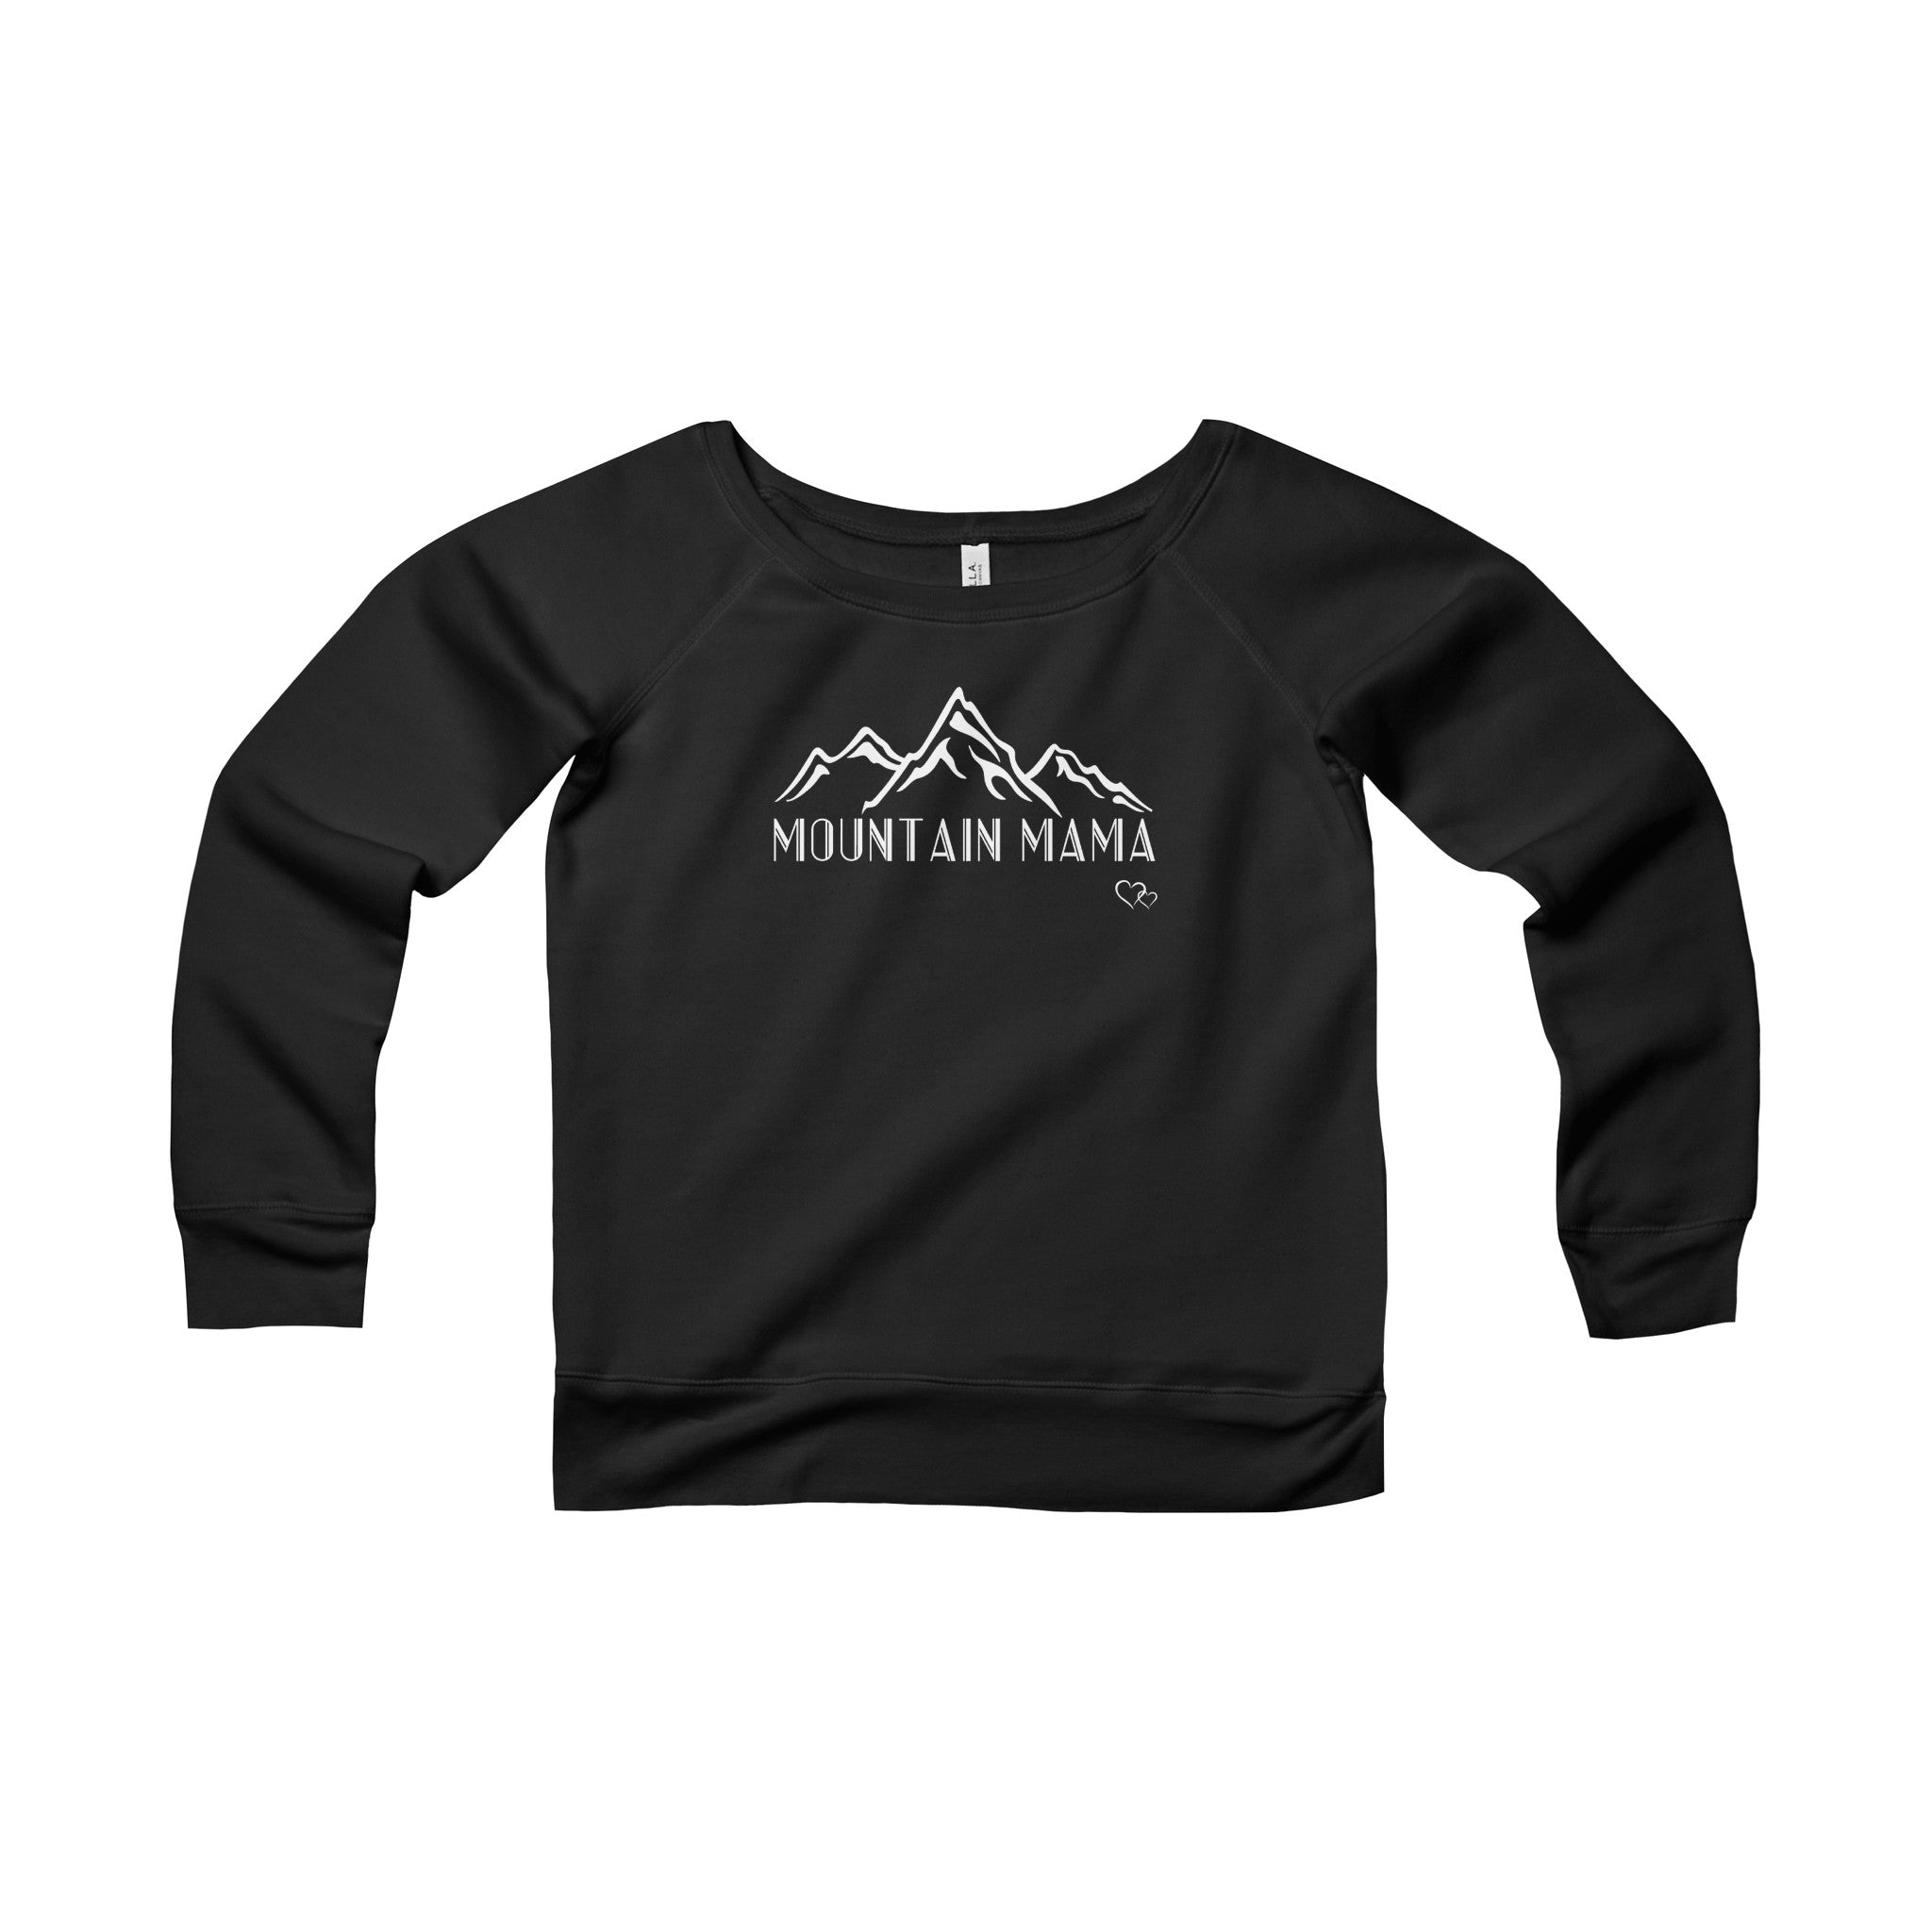 MOUNTAIN MAMA - Wide Neck Sweatshirt